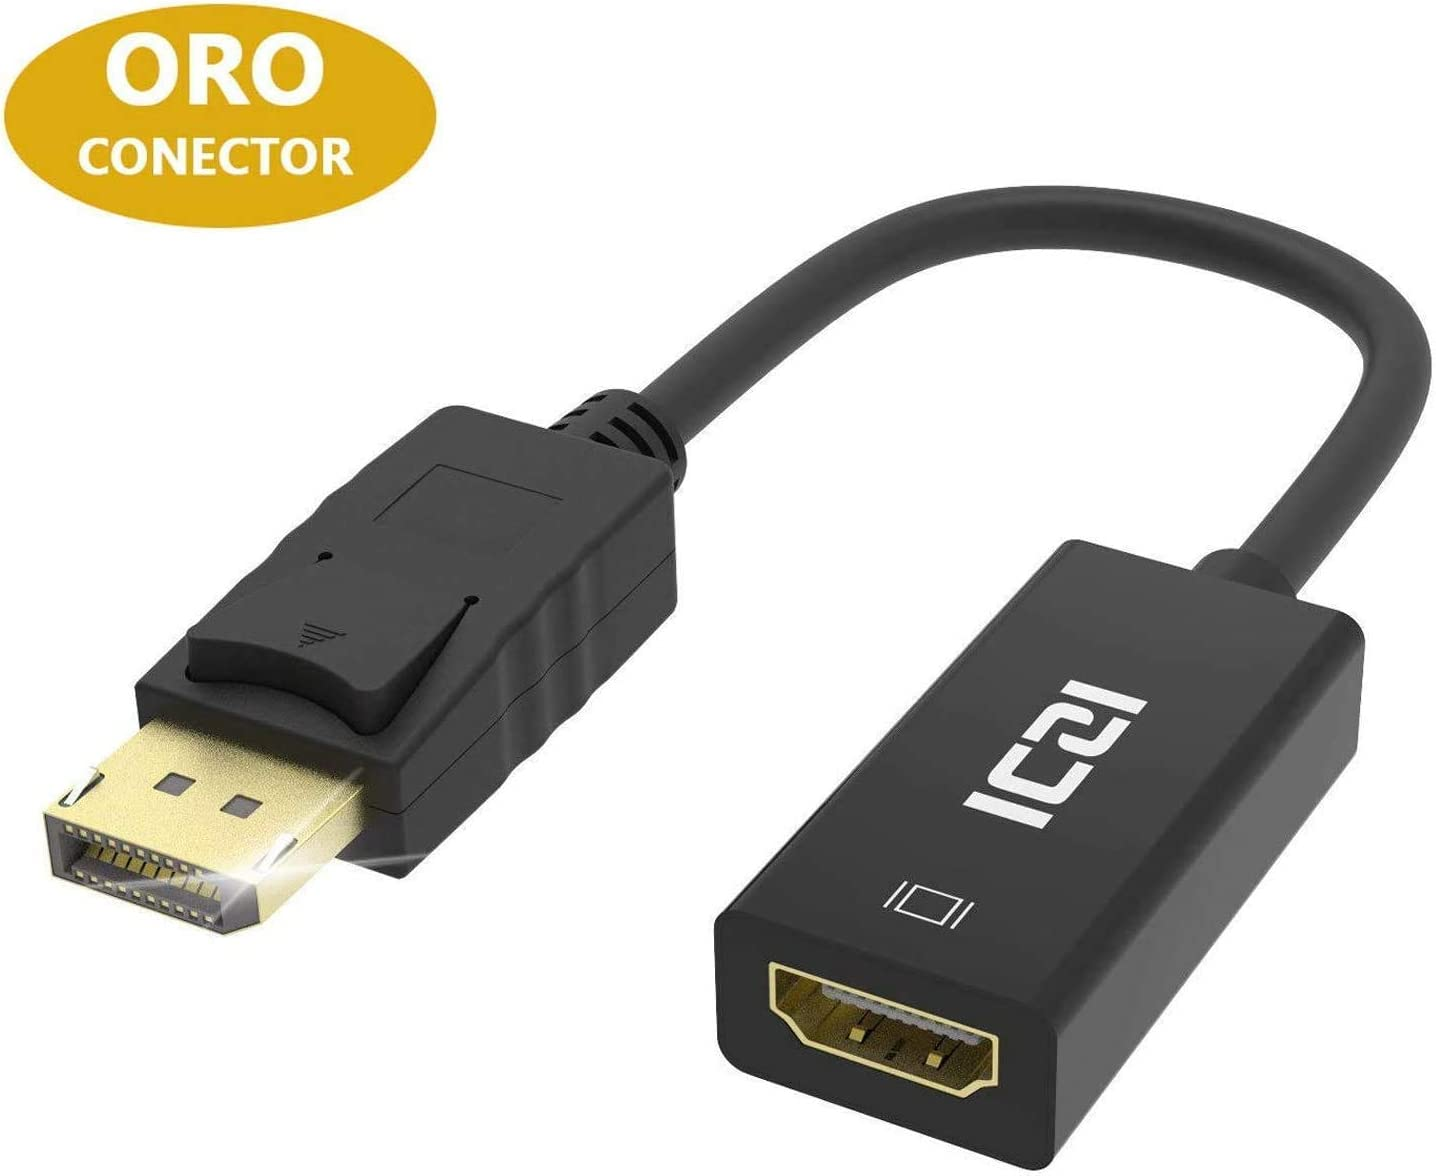 DisplayPort to HDMI, ICZI 4K DP to HDMI Adapter for GTX 750 Ti/970/1060/1070, Lenovo W510/T520/X201T, Thinkpad Pro Dock and More - Black